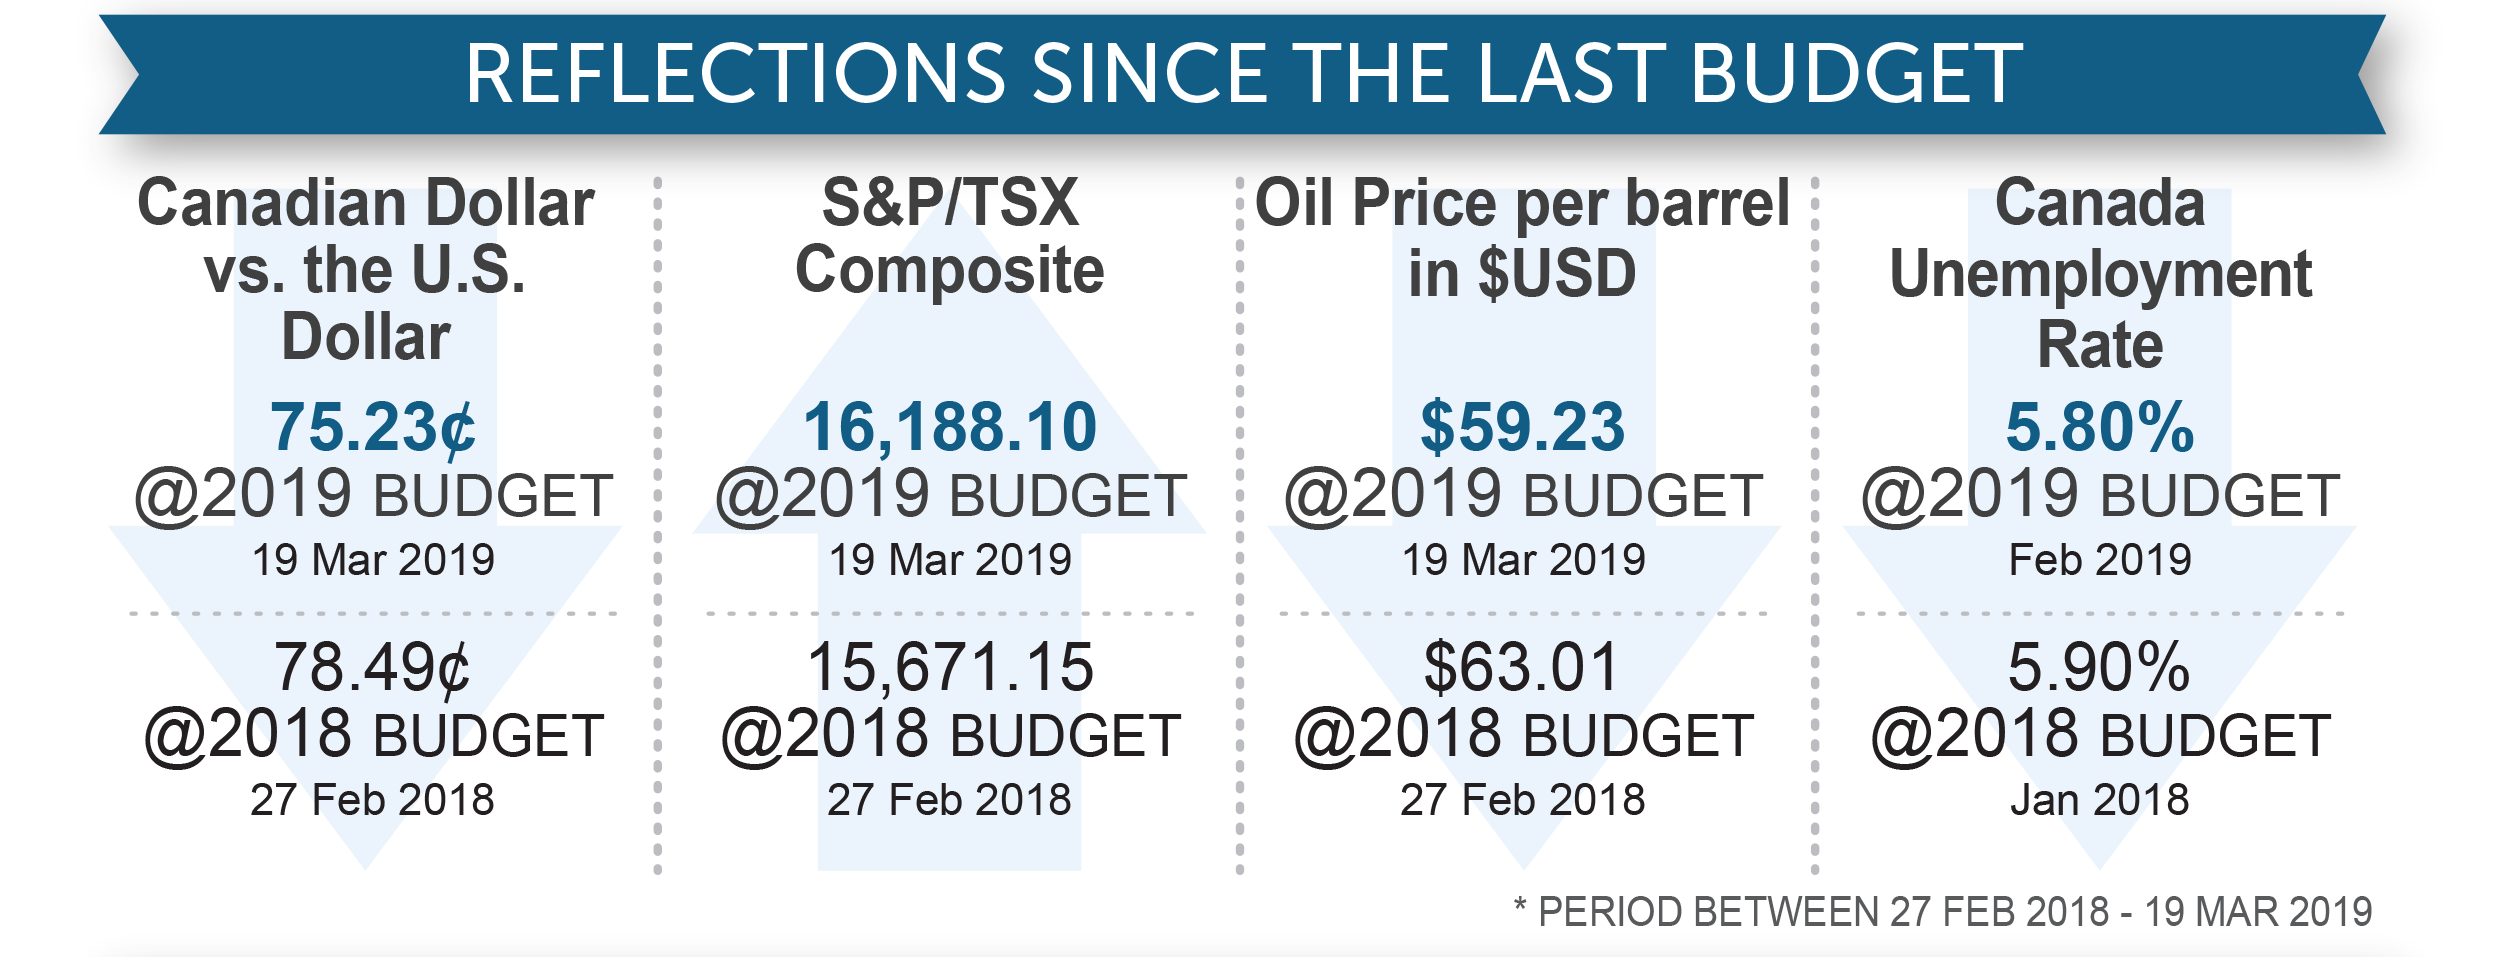 Reflections since the last budget